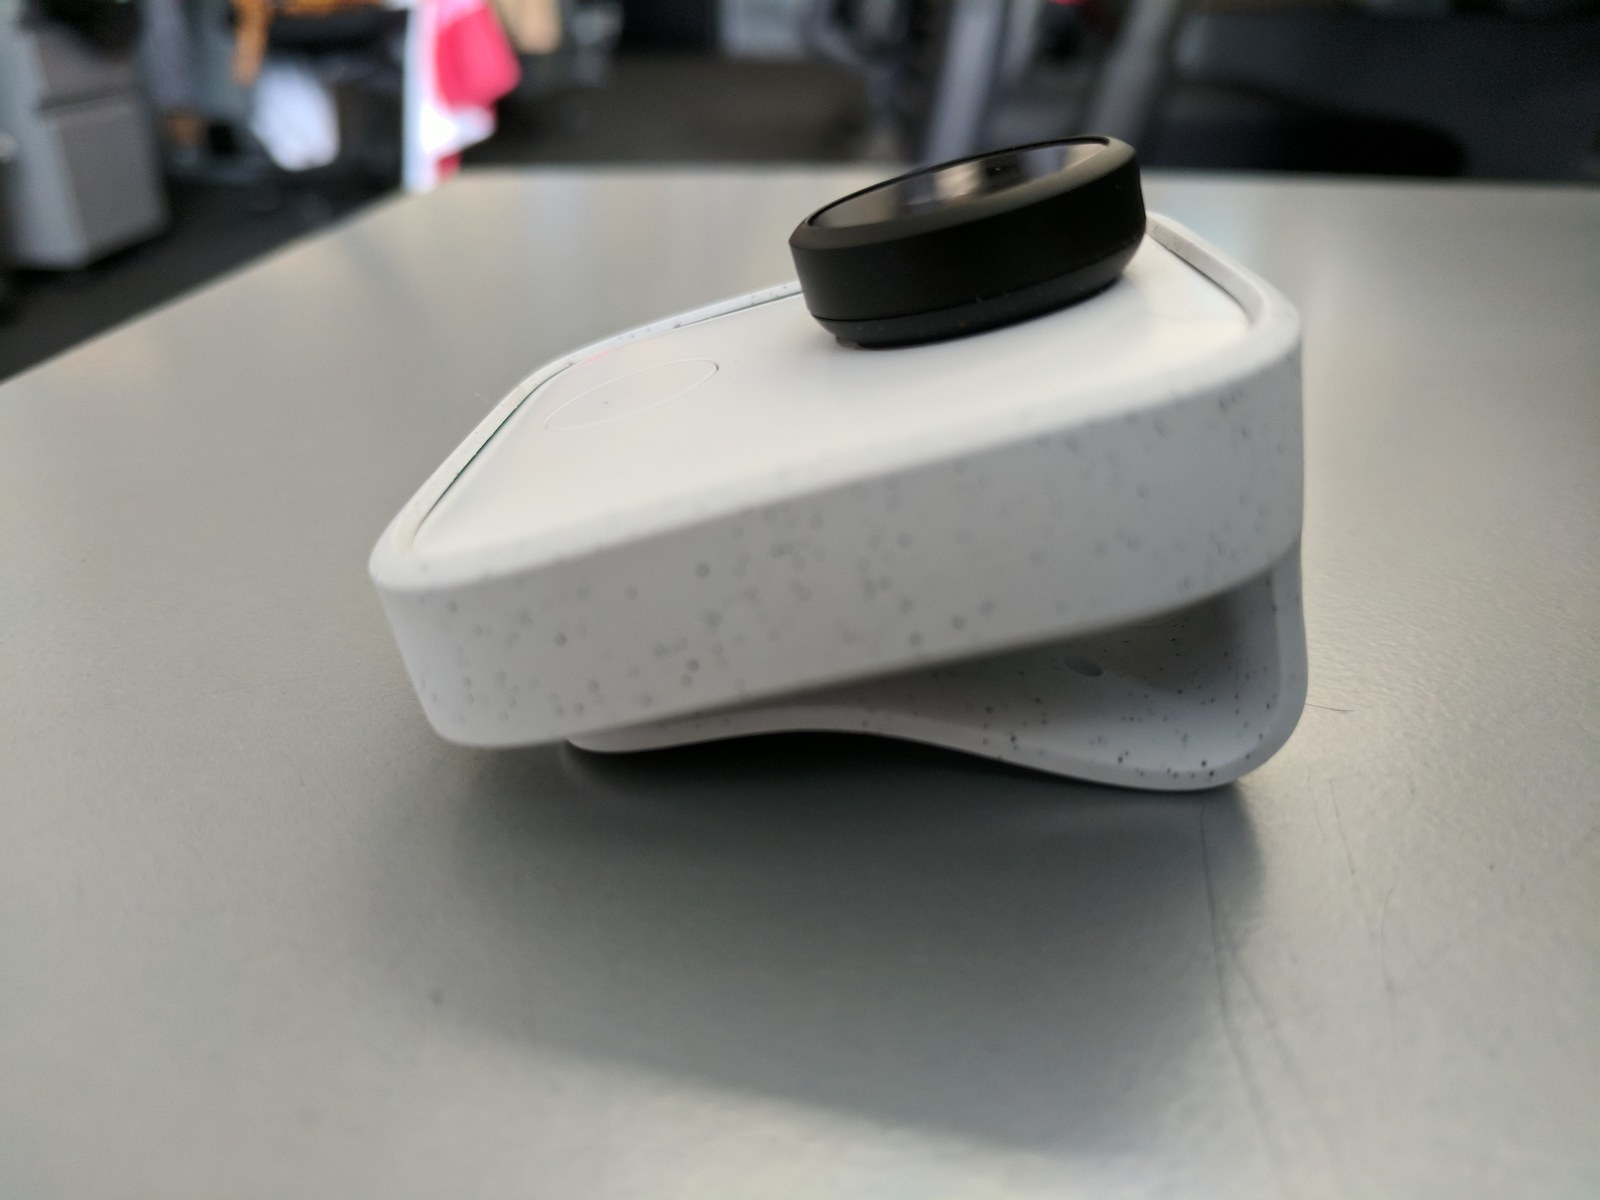 MadeByGoogle: Google launches an artificial intelligence infused wireless camera, Clips for $249